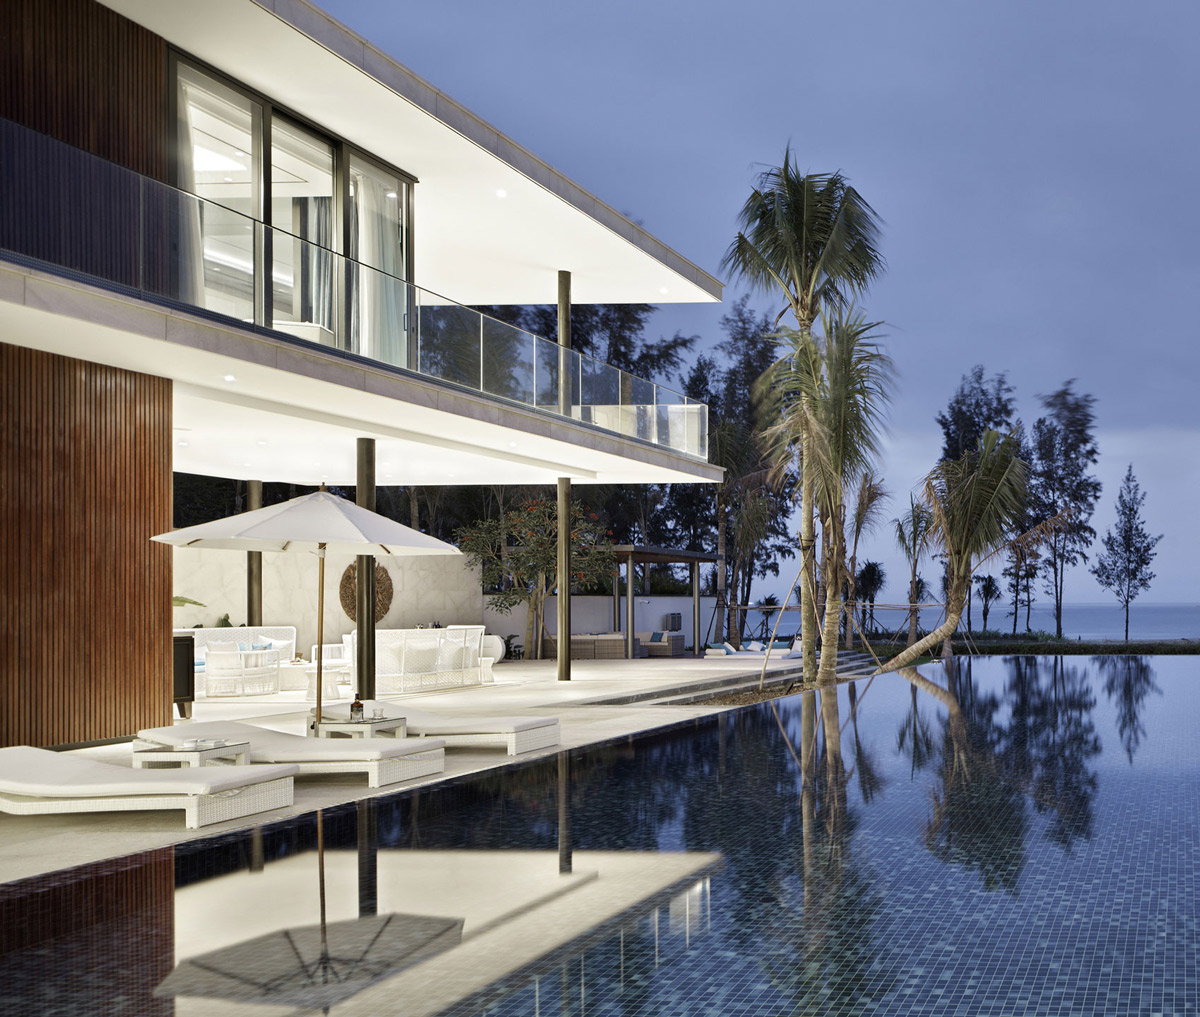 Pool, Sea Views, Beachside Villas in Lingshui, Hainan, China